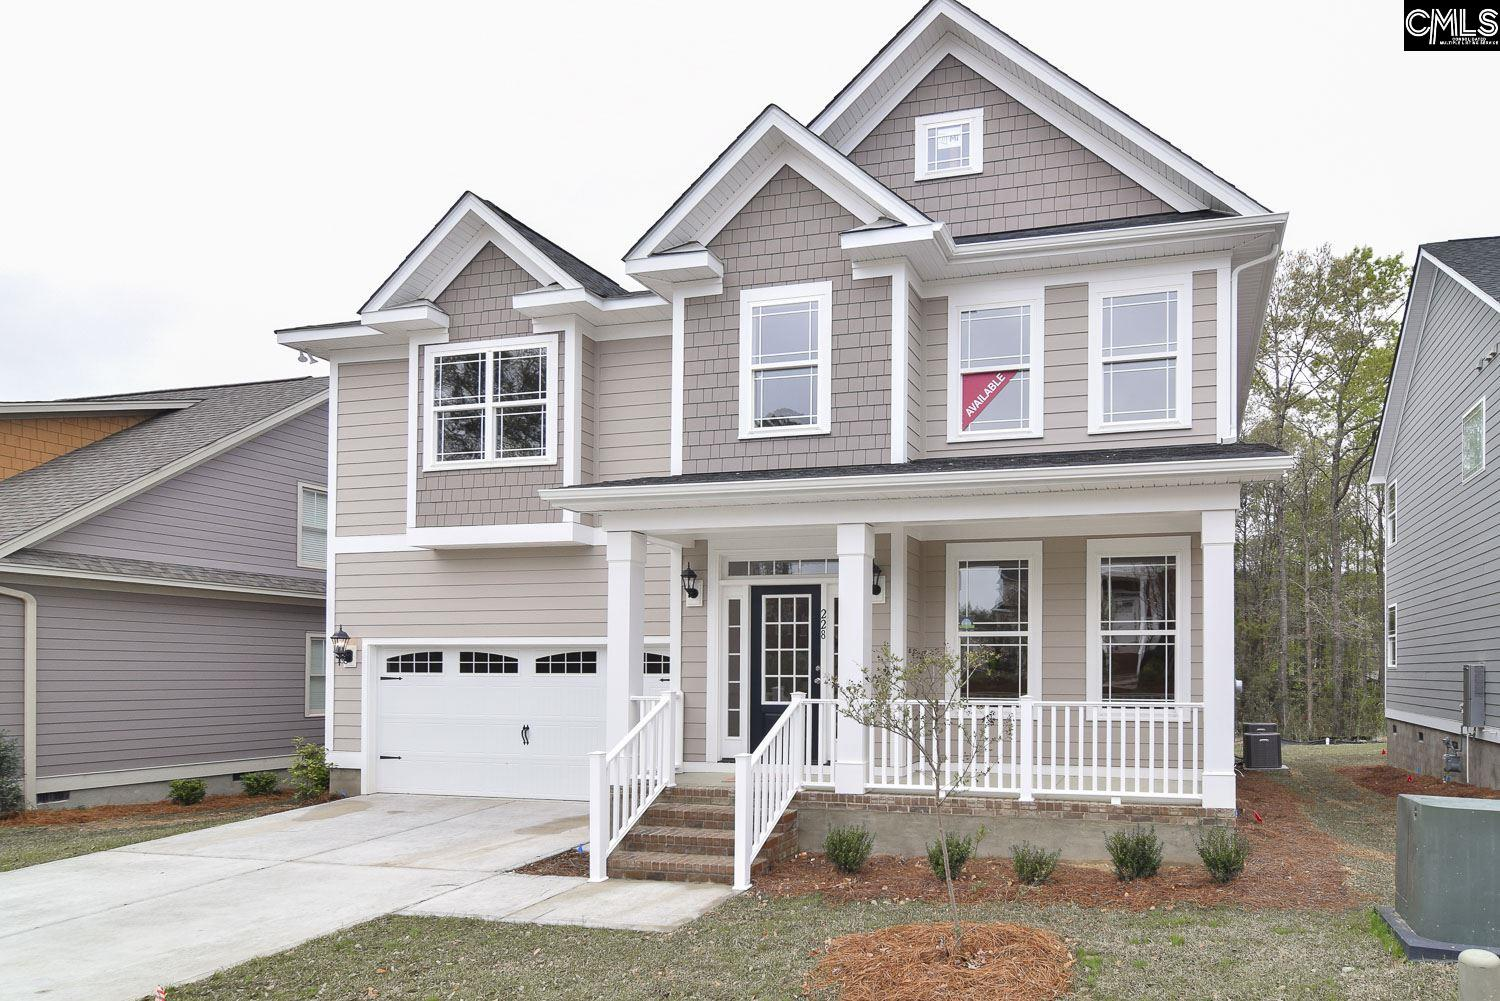 228 Baysdale Columbia, SC 29229